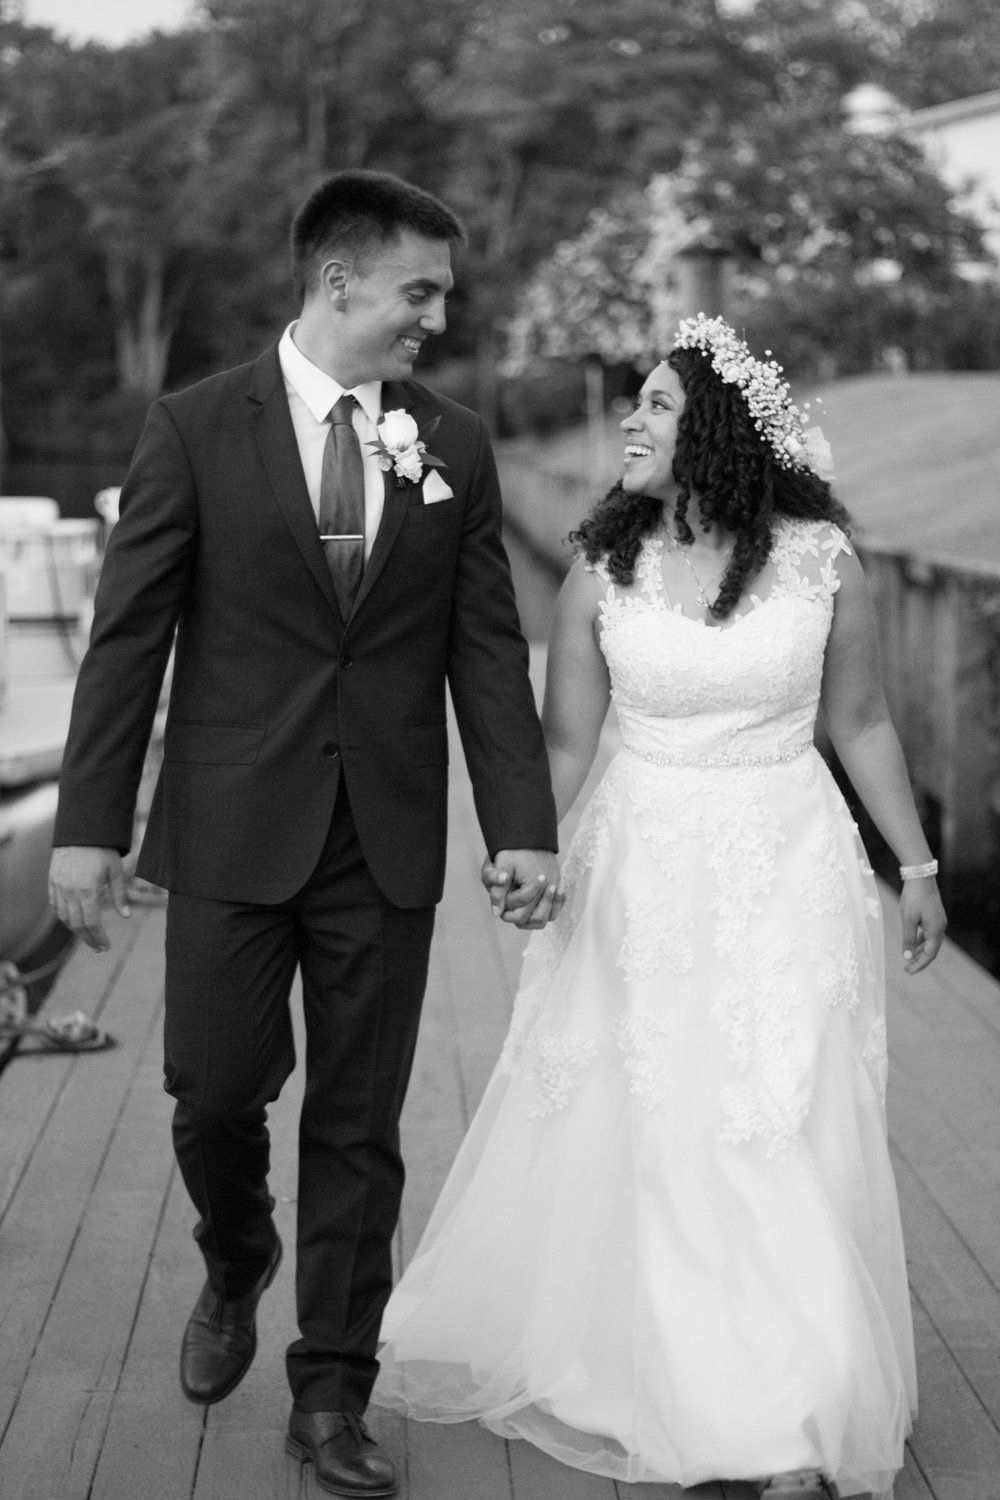 Cathy and Chris Wedding Photos - Black and White - by Brittany Castillo Meadow Portraits (17 of 21).jpg